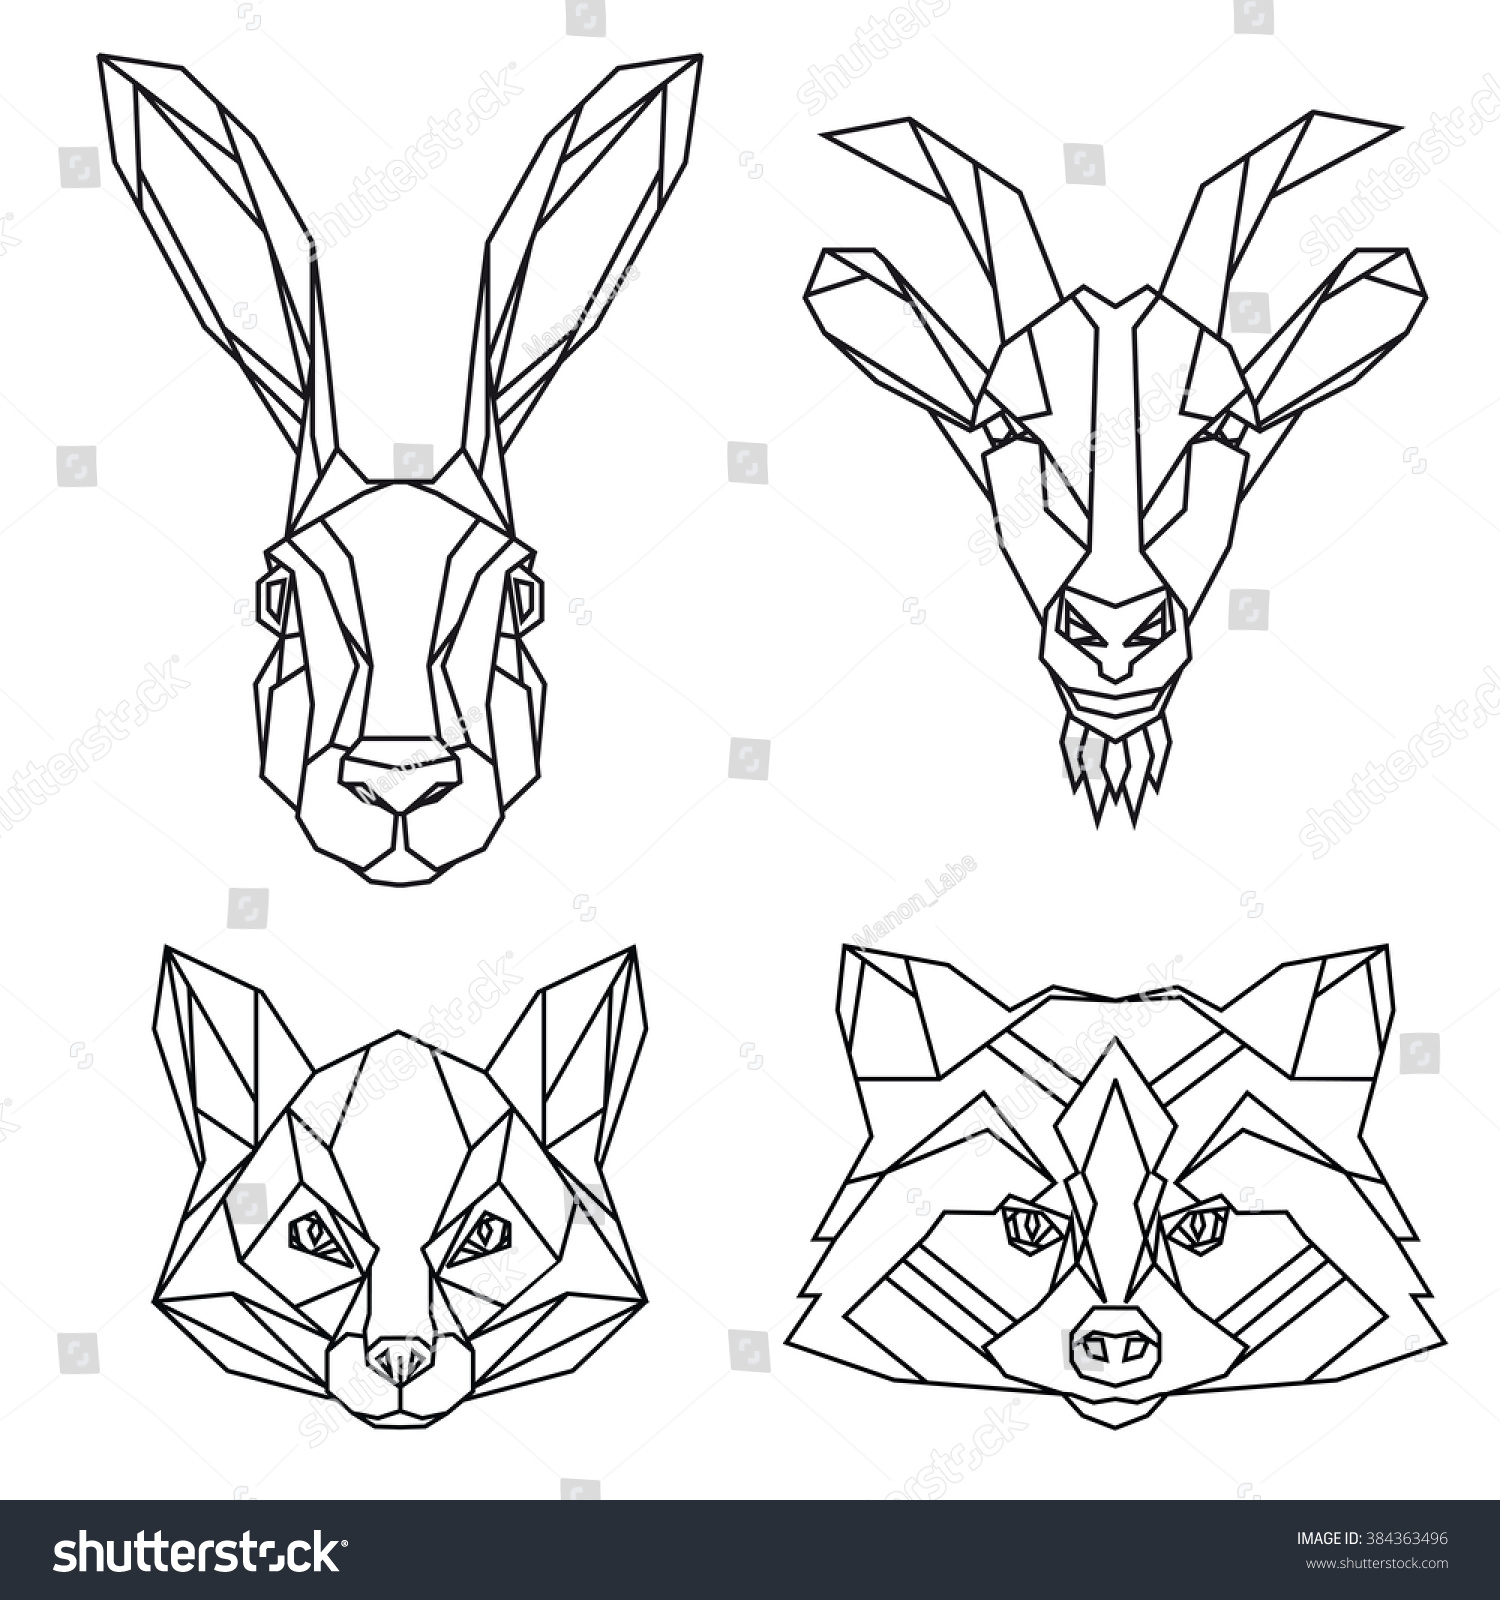 Geometric Set Hare Goat Fox Raccoon Stock Vector 384363496 ... - photo#46